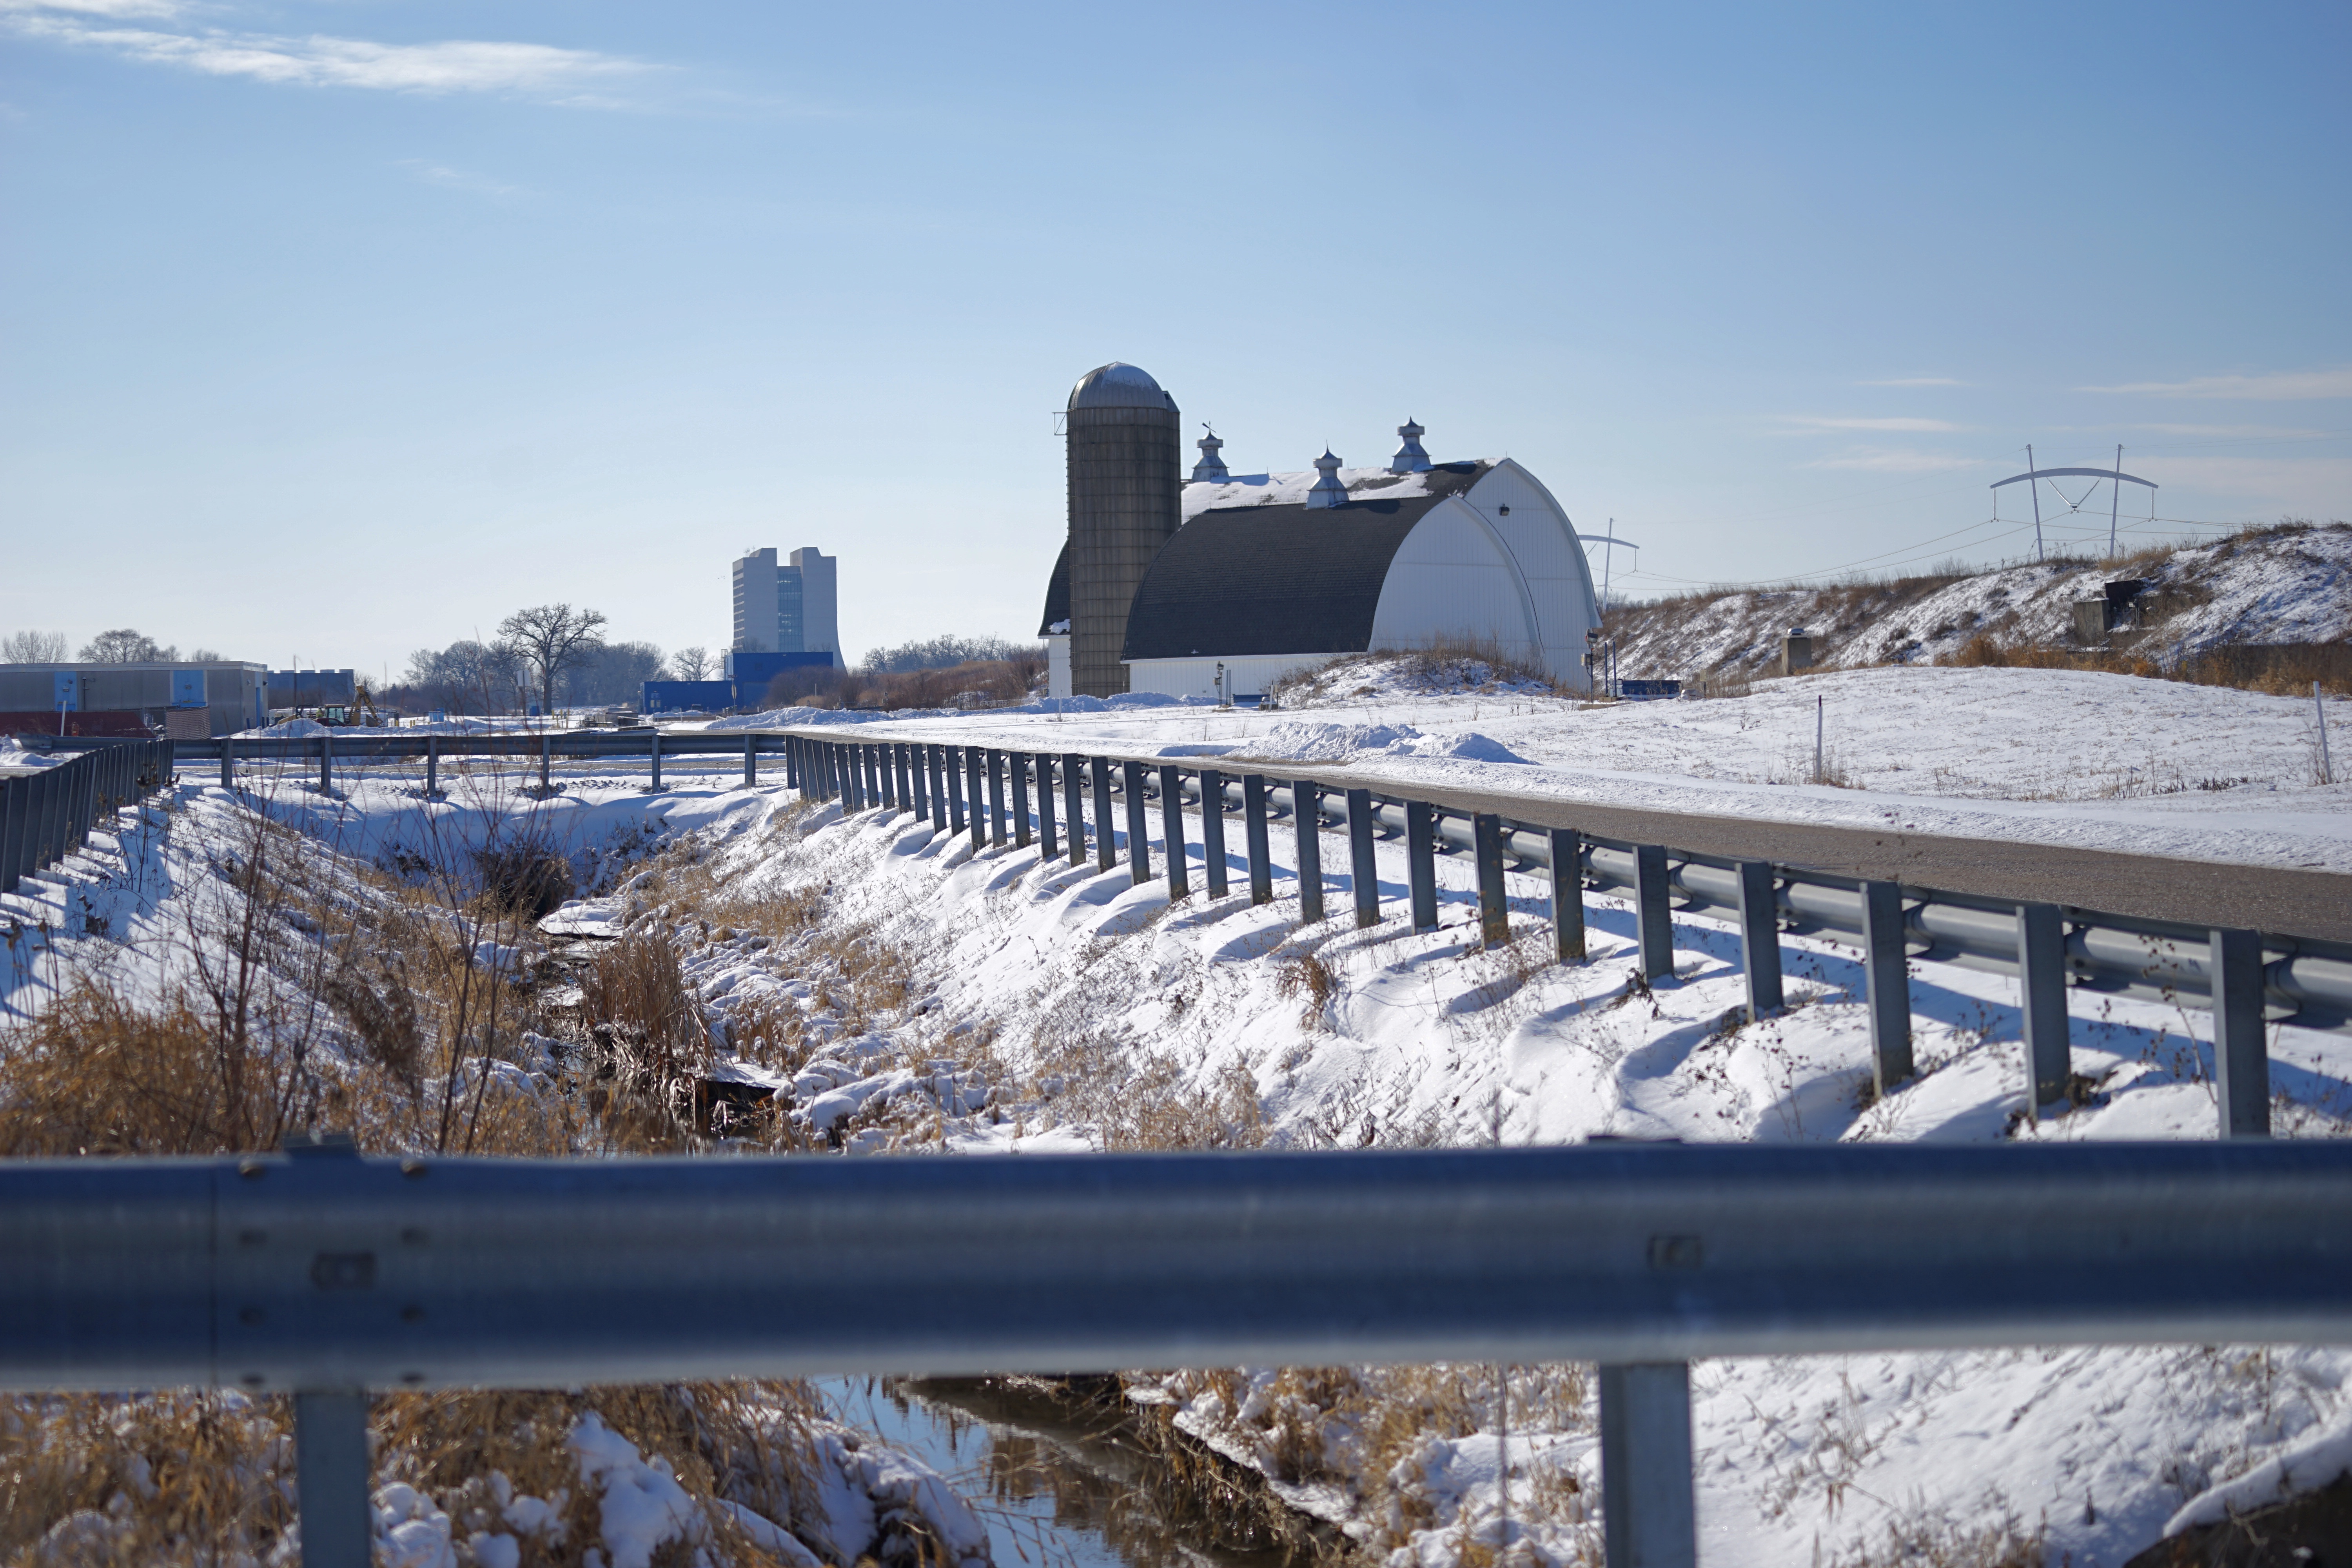 Throwback Thursday: It's a nice crisp, January day at Fermilab. landscape, nature, building, winter, snow Photo: Leticia Shaddix